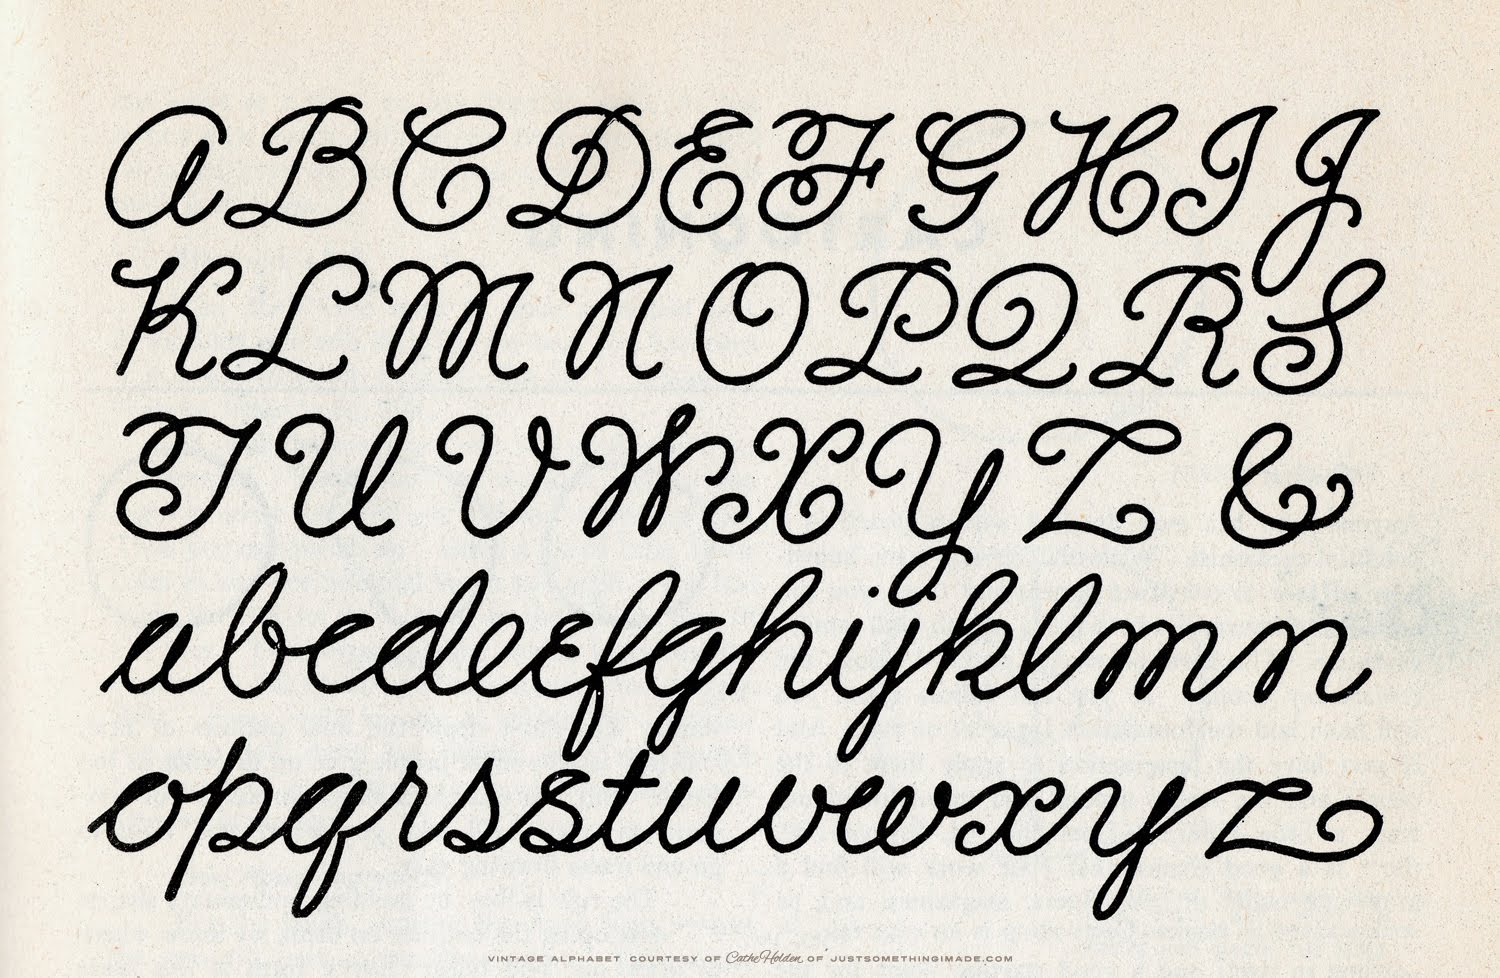 Old Fashioned Handwriting Alphabet 42